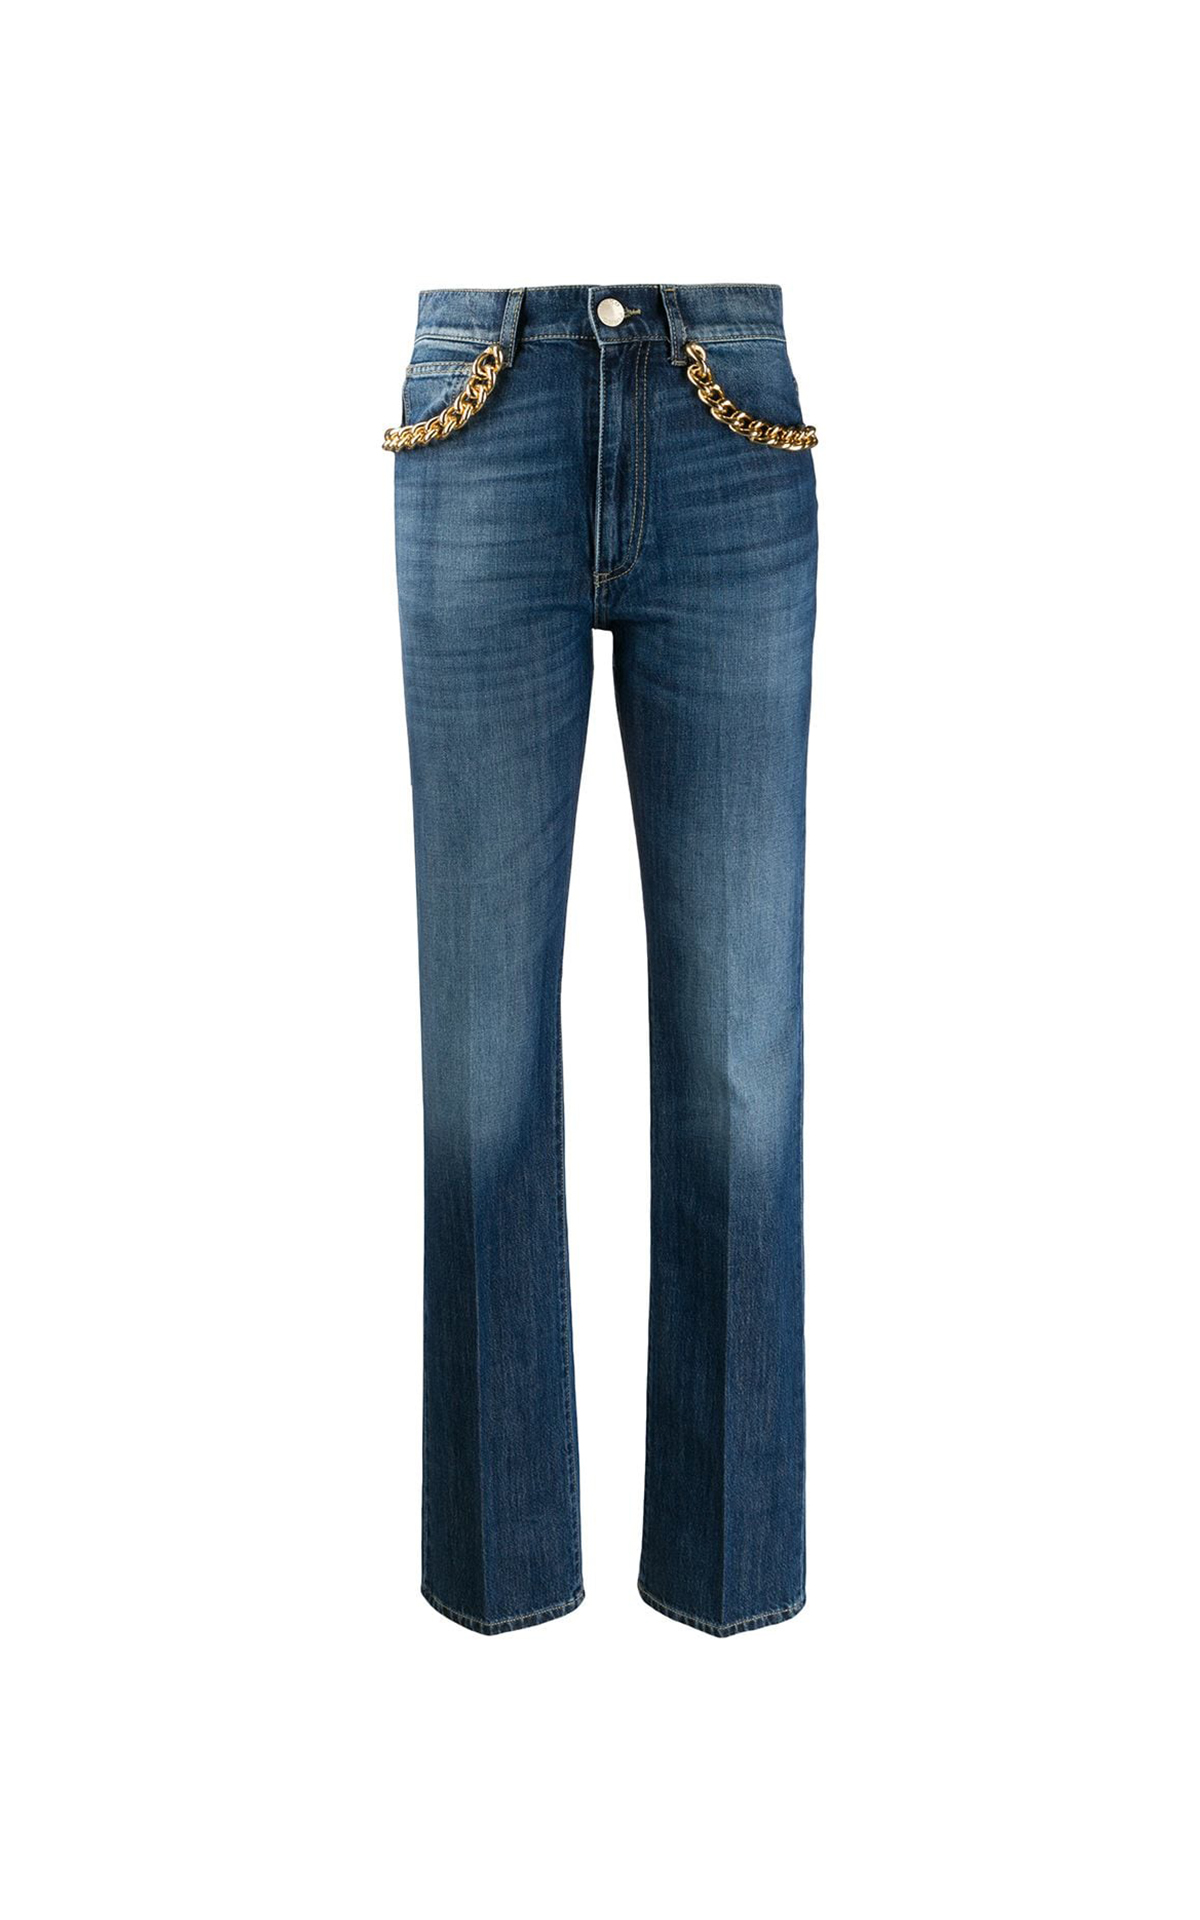 Jeans with chains Pinko